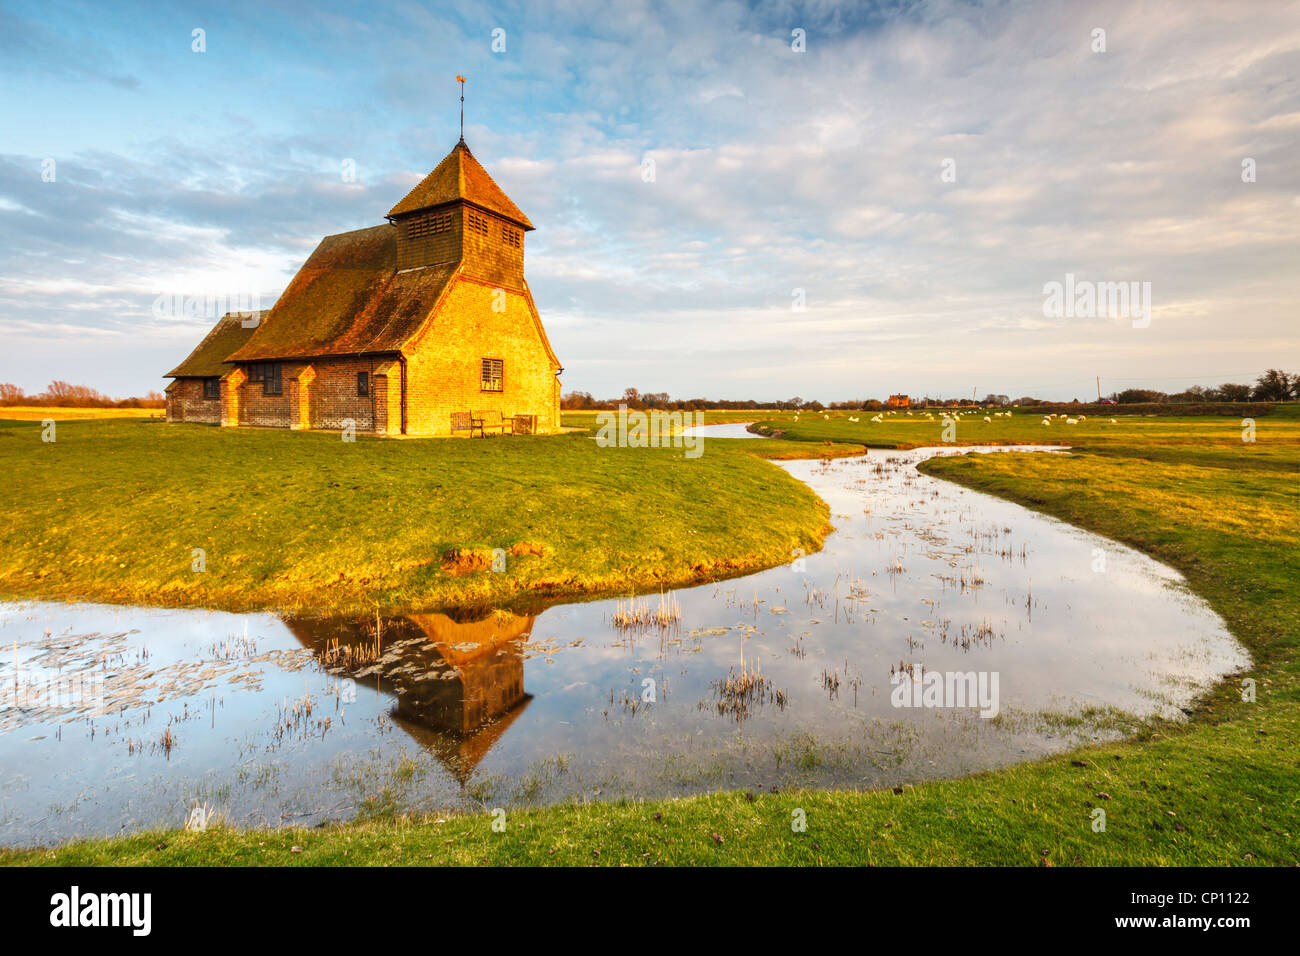 Fairfield Church on Romney Marsh in Kent  captured in warm late evening light - Stock Image